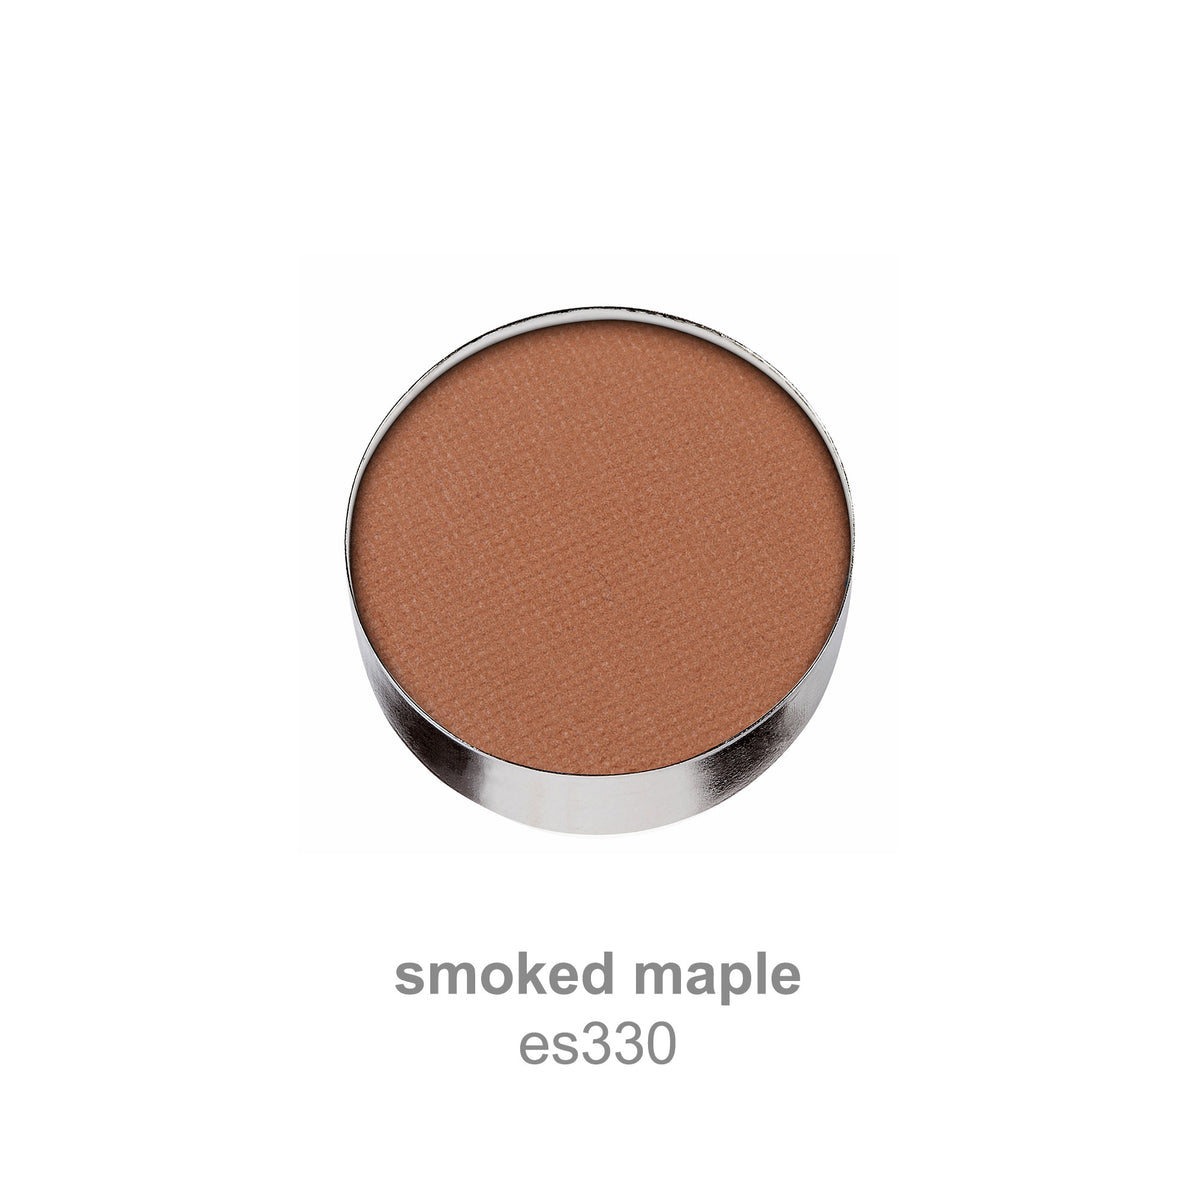 smoked maple (es330)